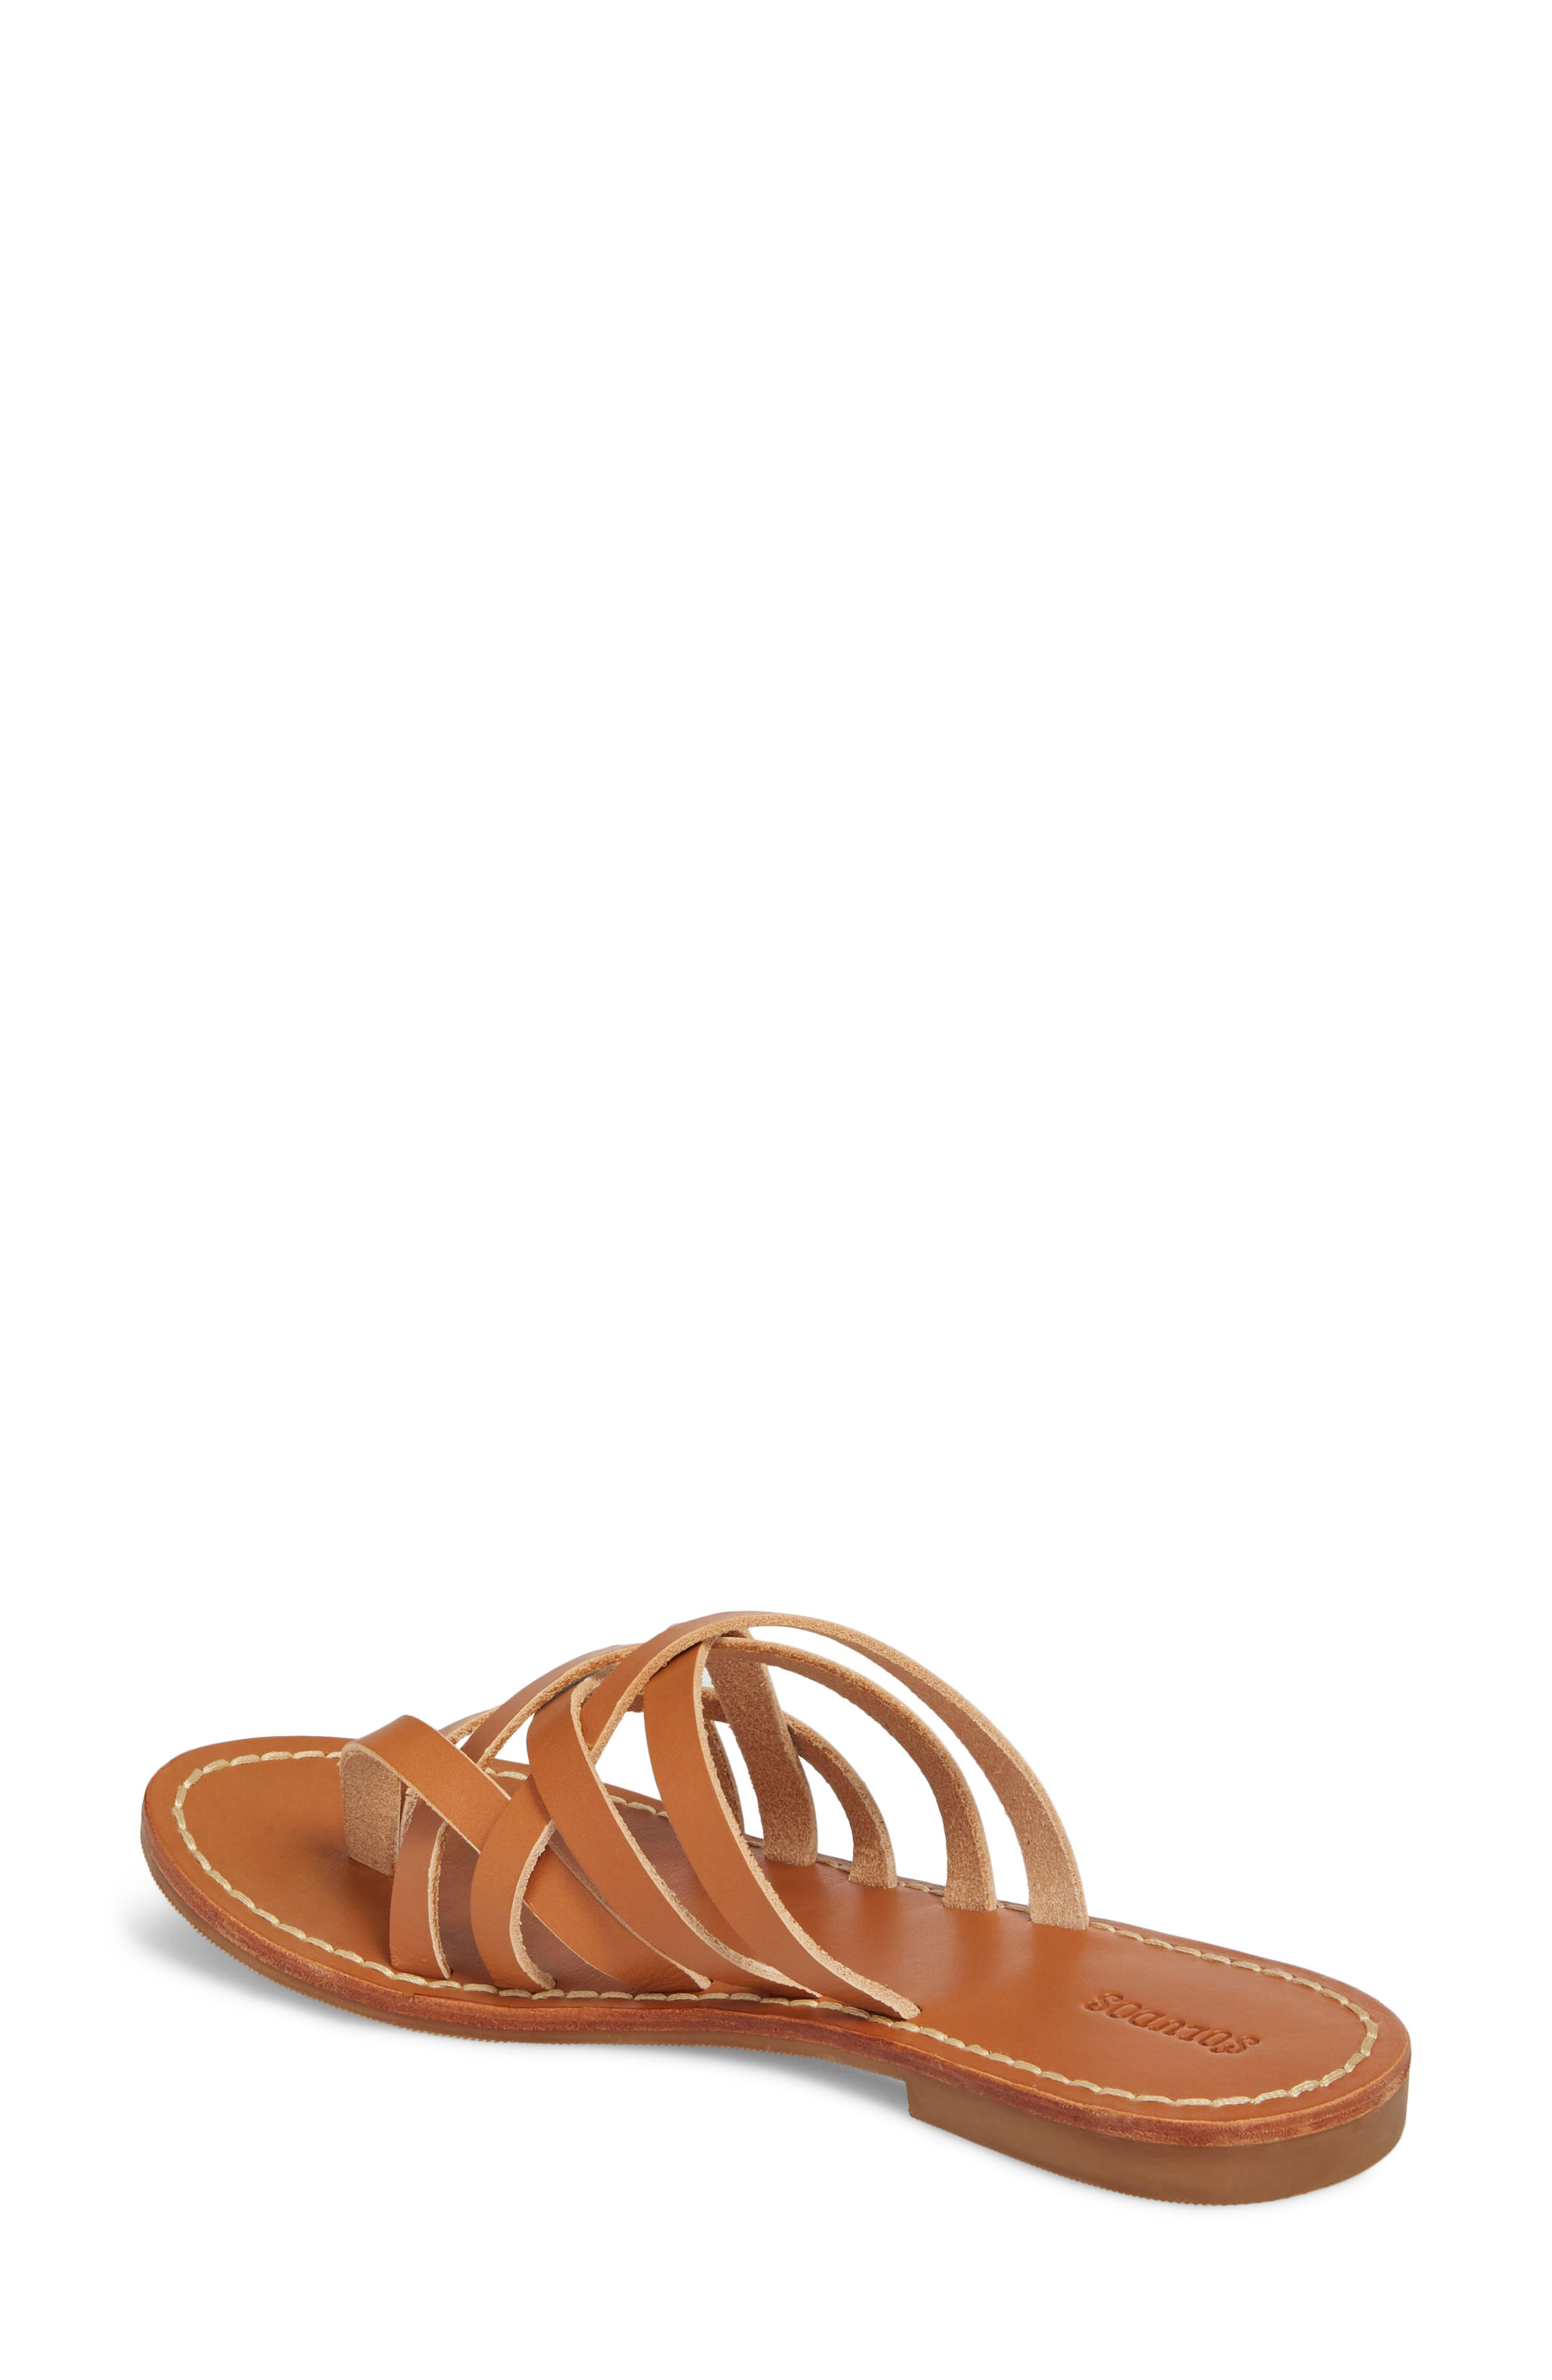 Strappy Sandal,                             Alternate thumbnail 2, color,                             Natural Leather